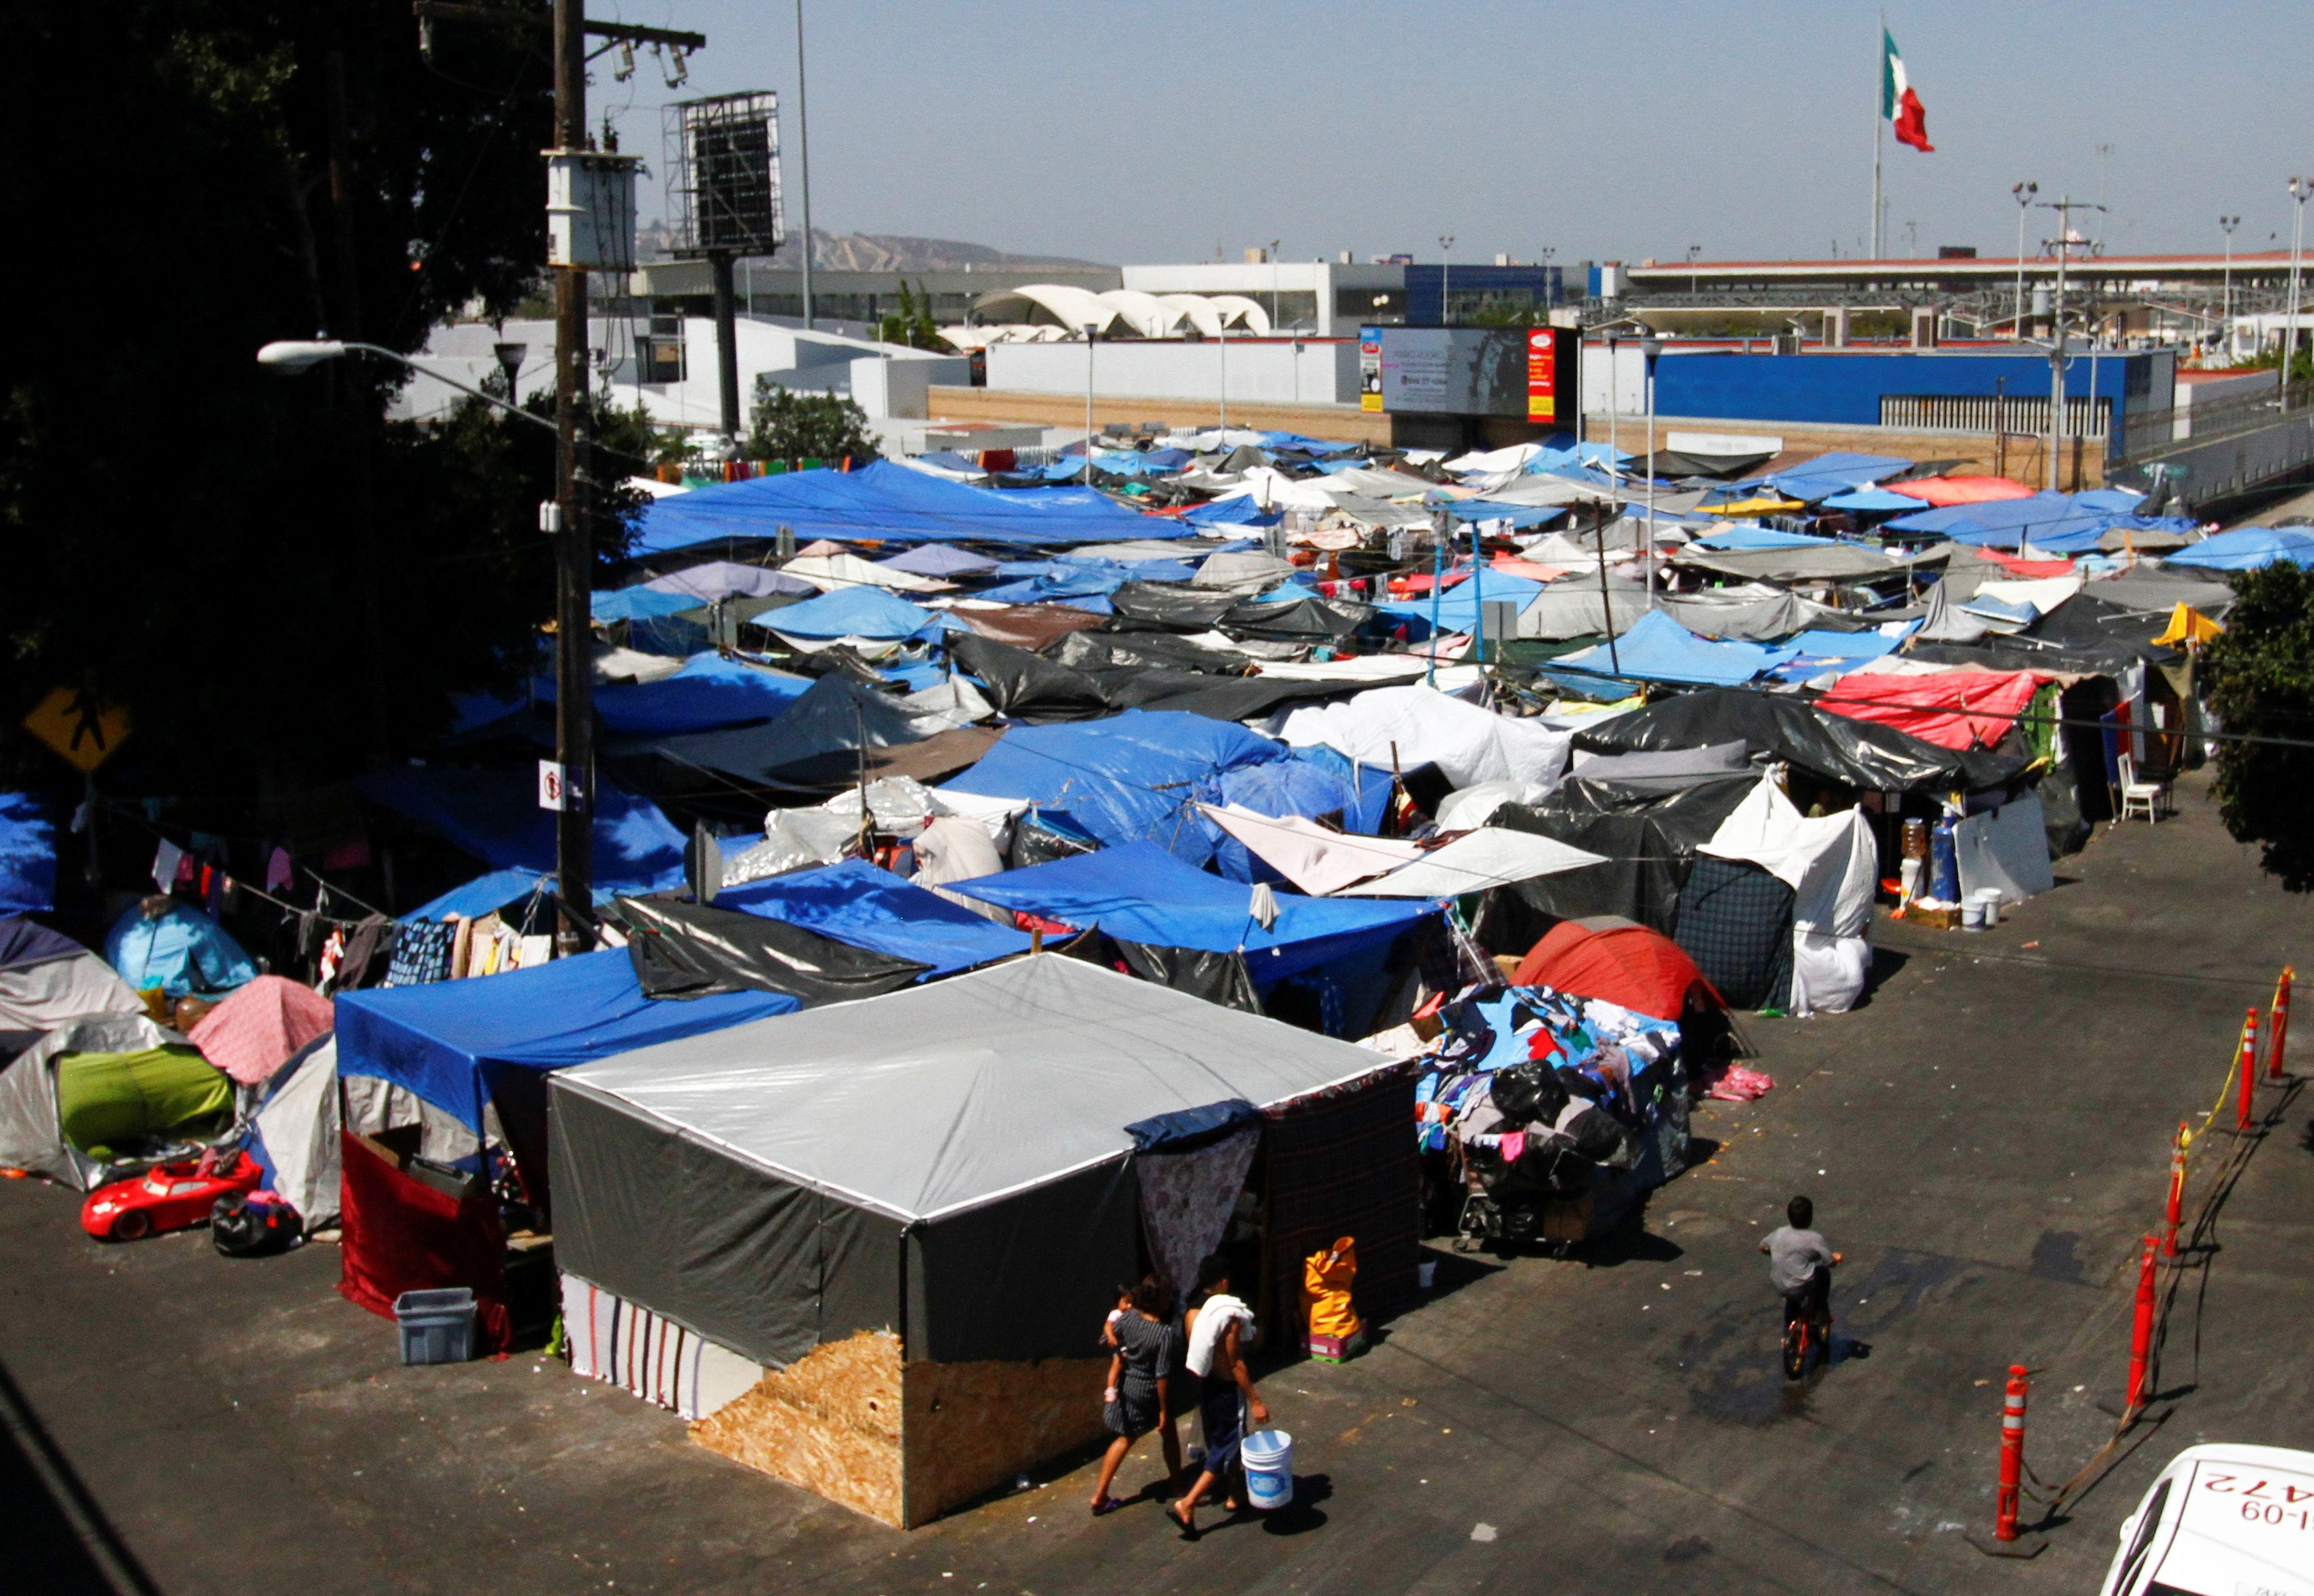 Tarps and tents are set up at a migrant camp near the El Chaparral border crossing with the U.S., in Tijuana, Mexico August 26, 2021. REUTERS/Jorge Duenes